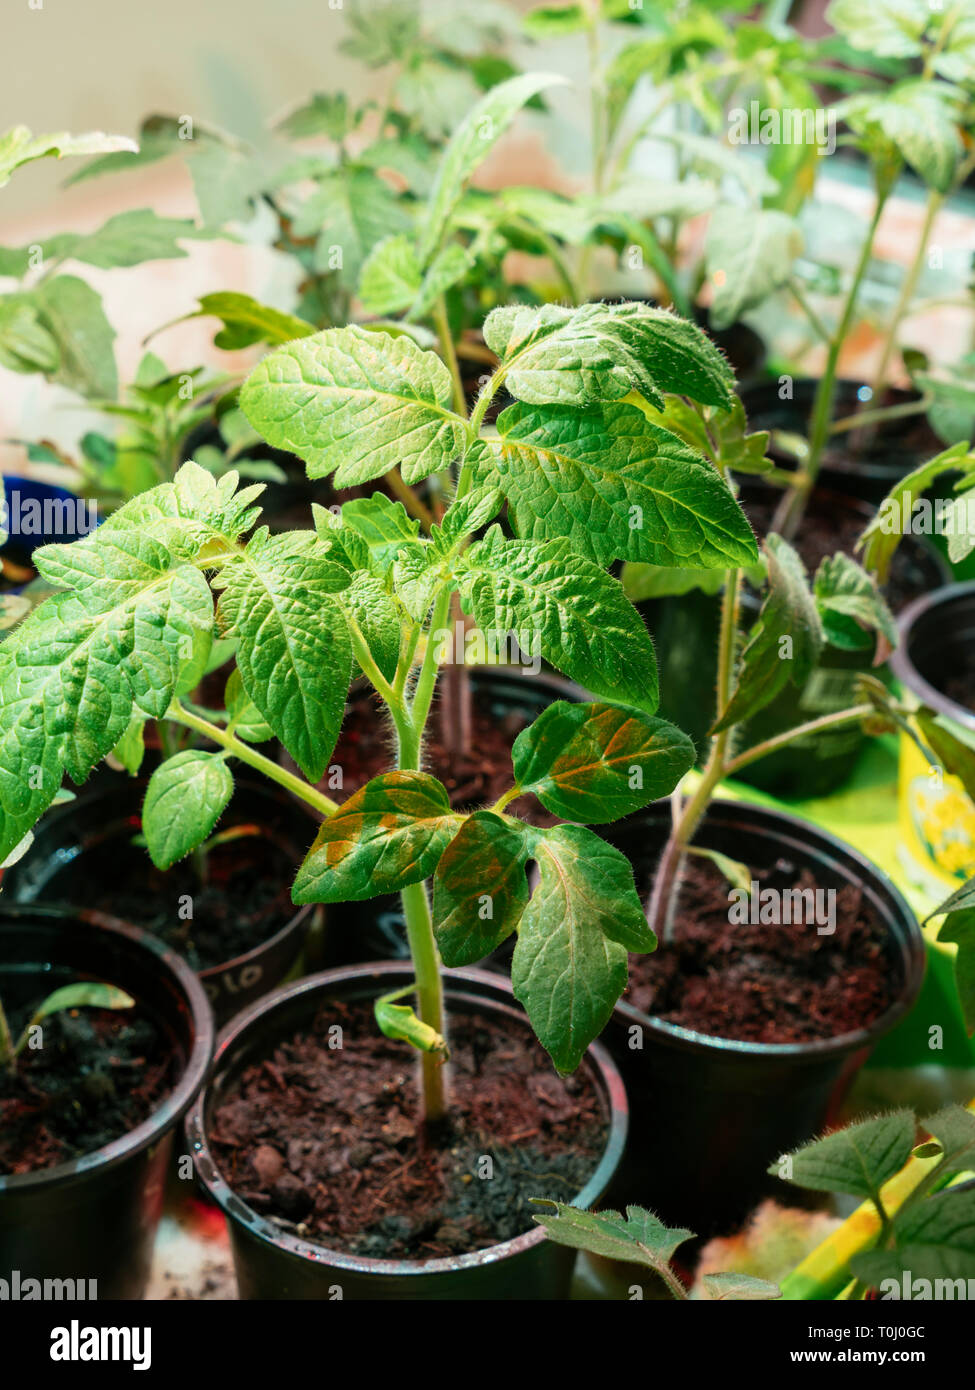 Tomato seedlings growing indoors on a window sill under a grow light. Stock Photo